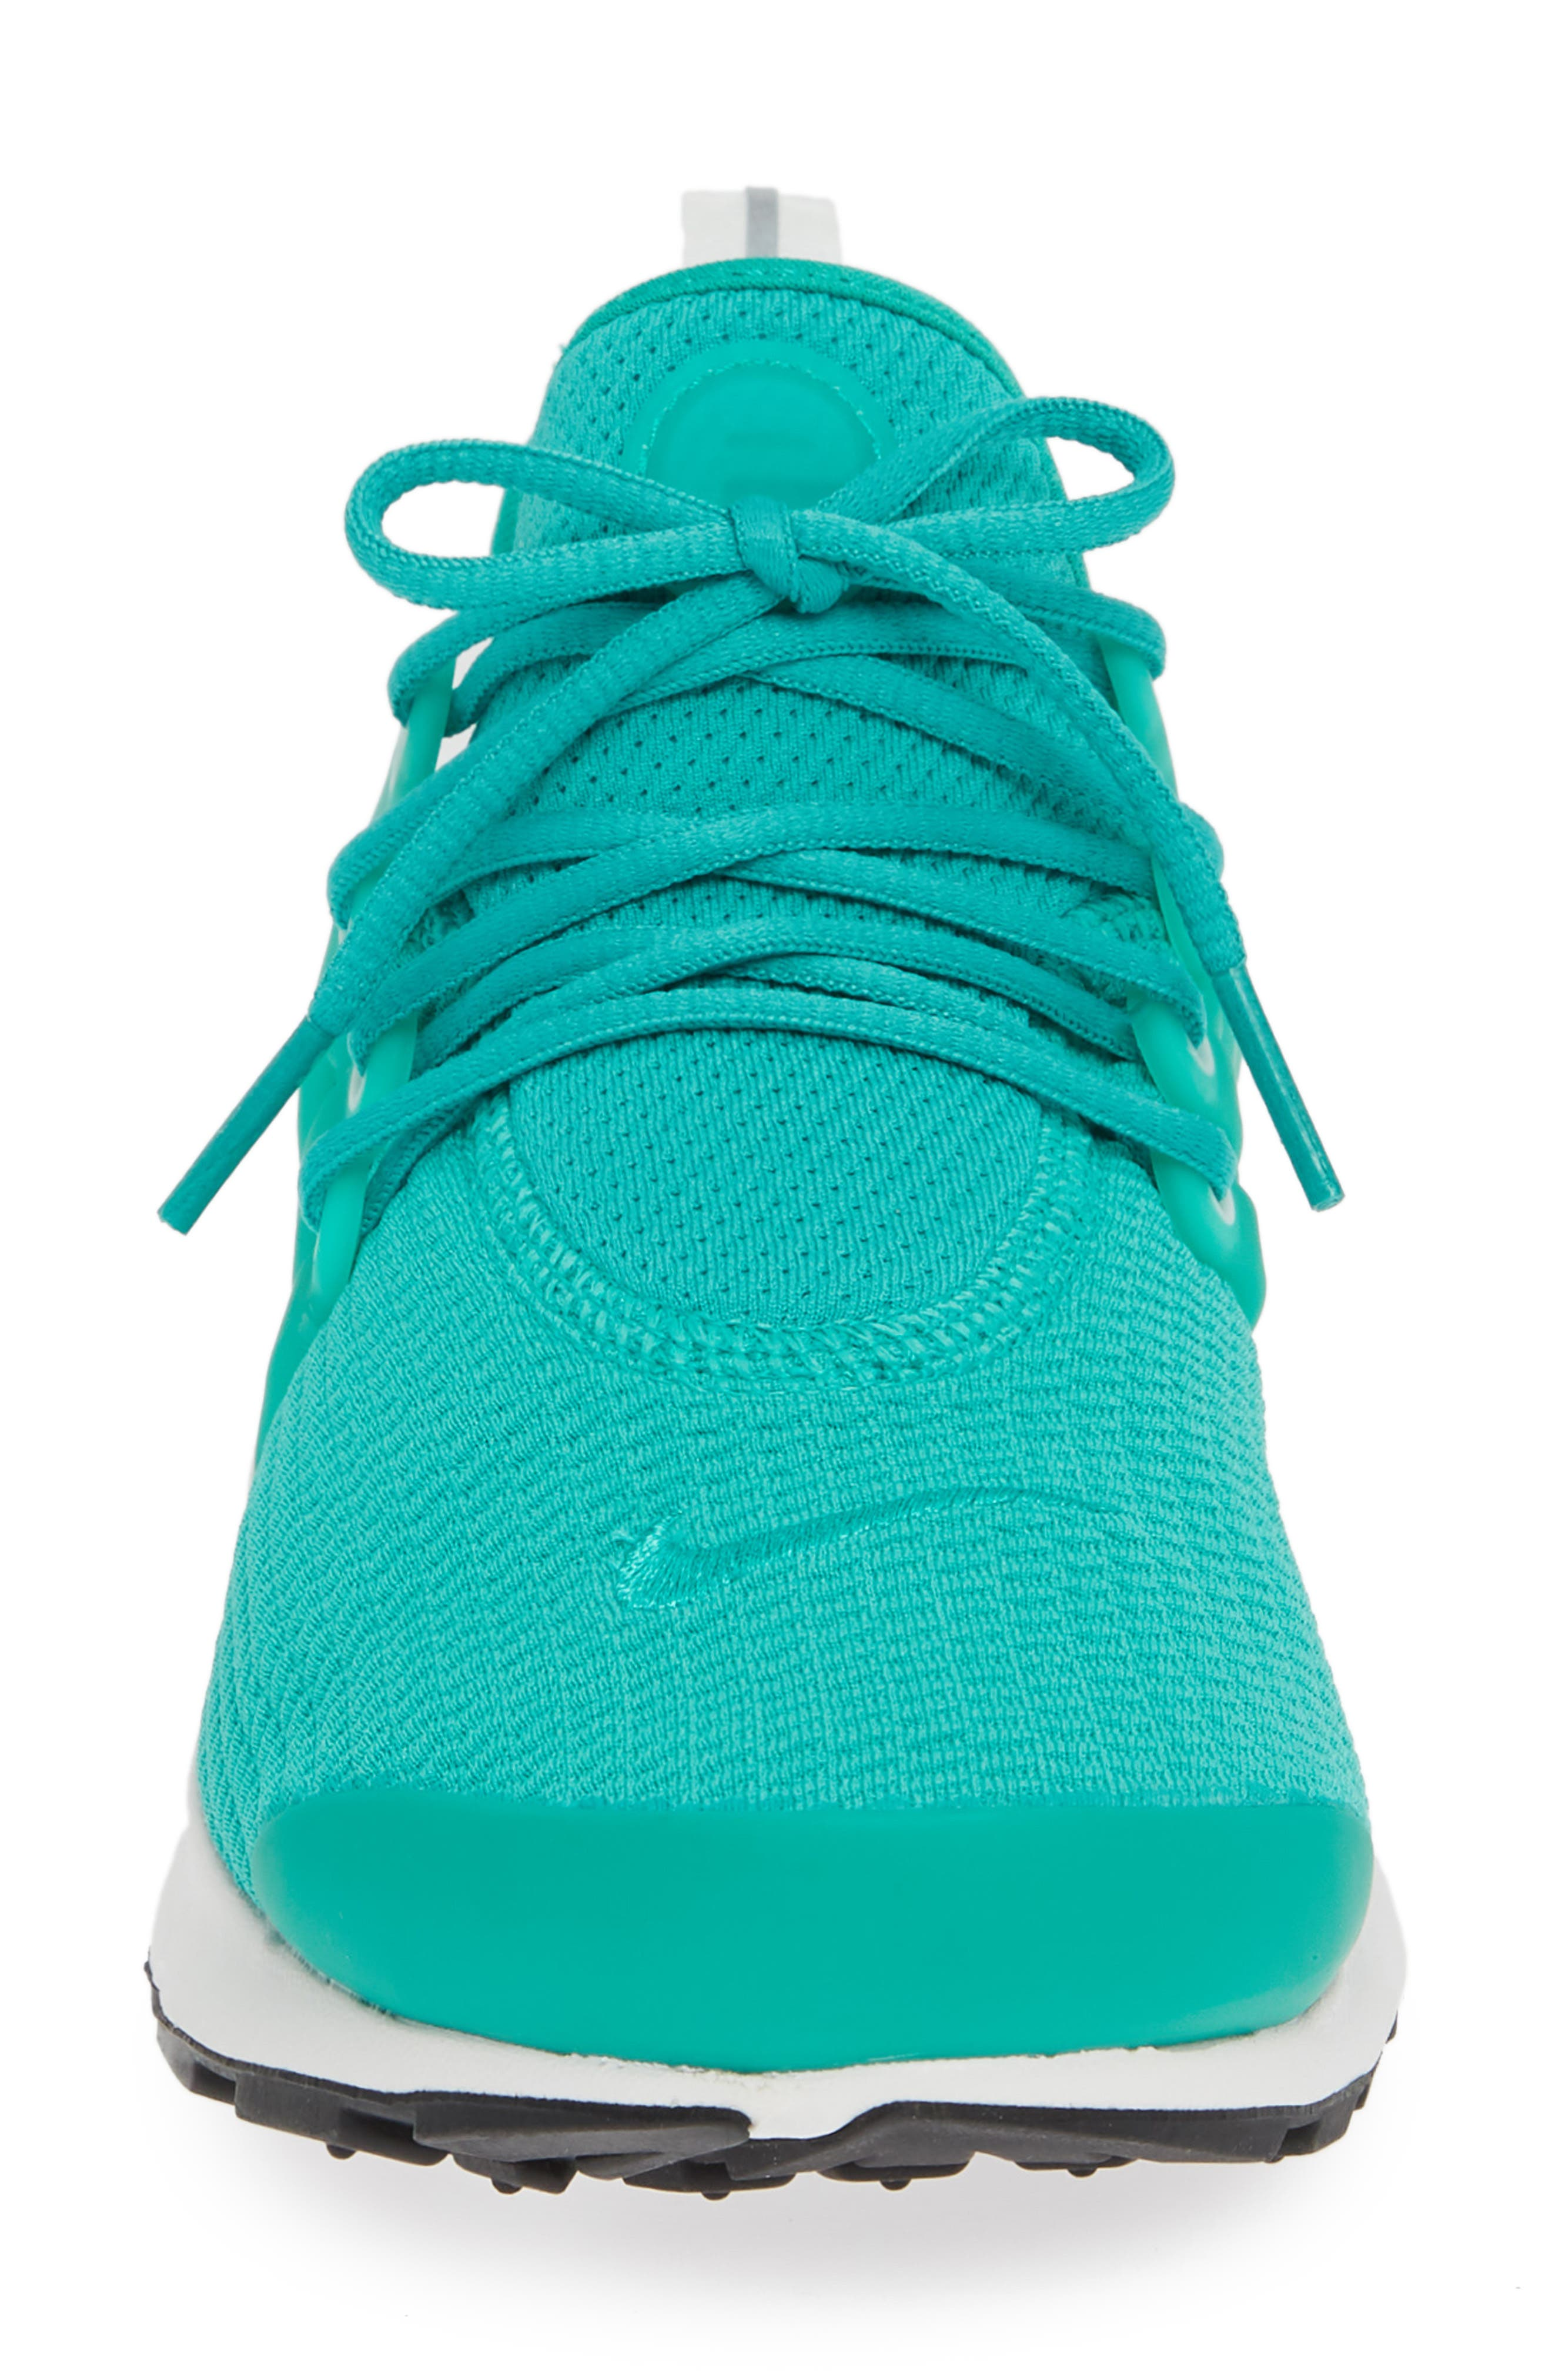 Air Presto Sneaker,                             Alternate thumbnail 4, color,                             CLEAR EMERALD/ SUMMIT WHITE